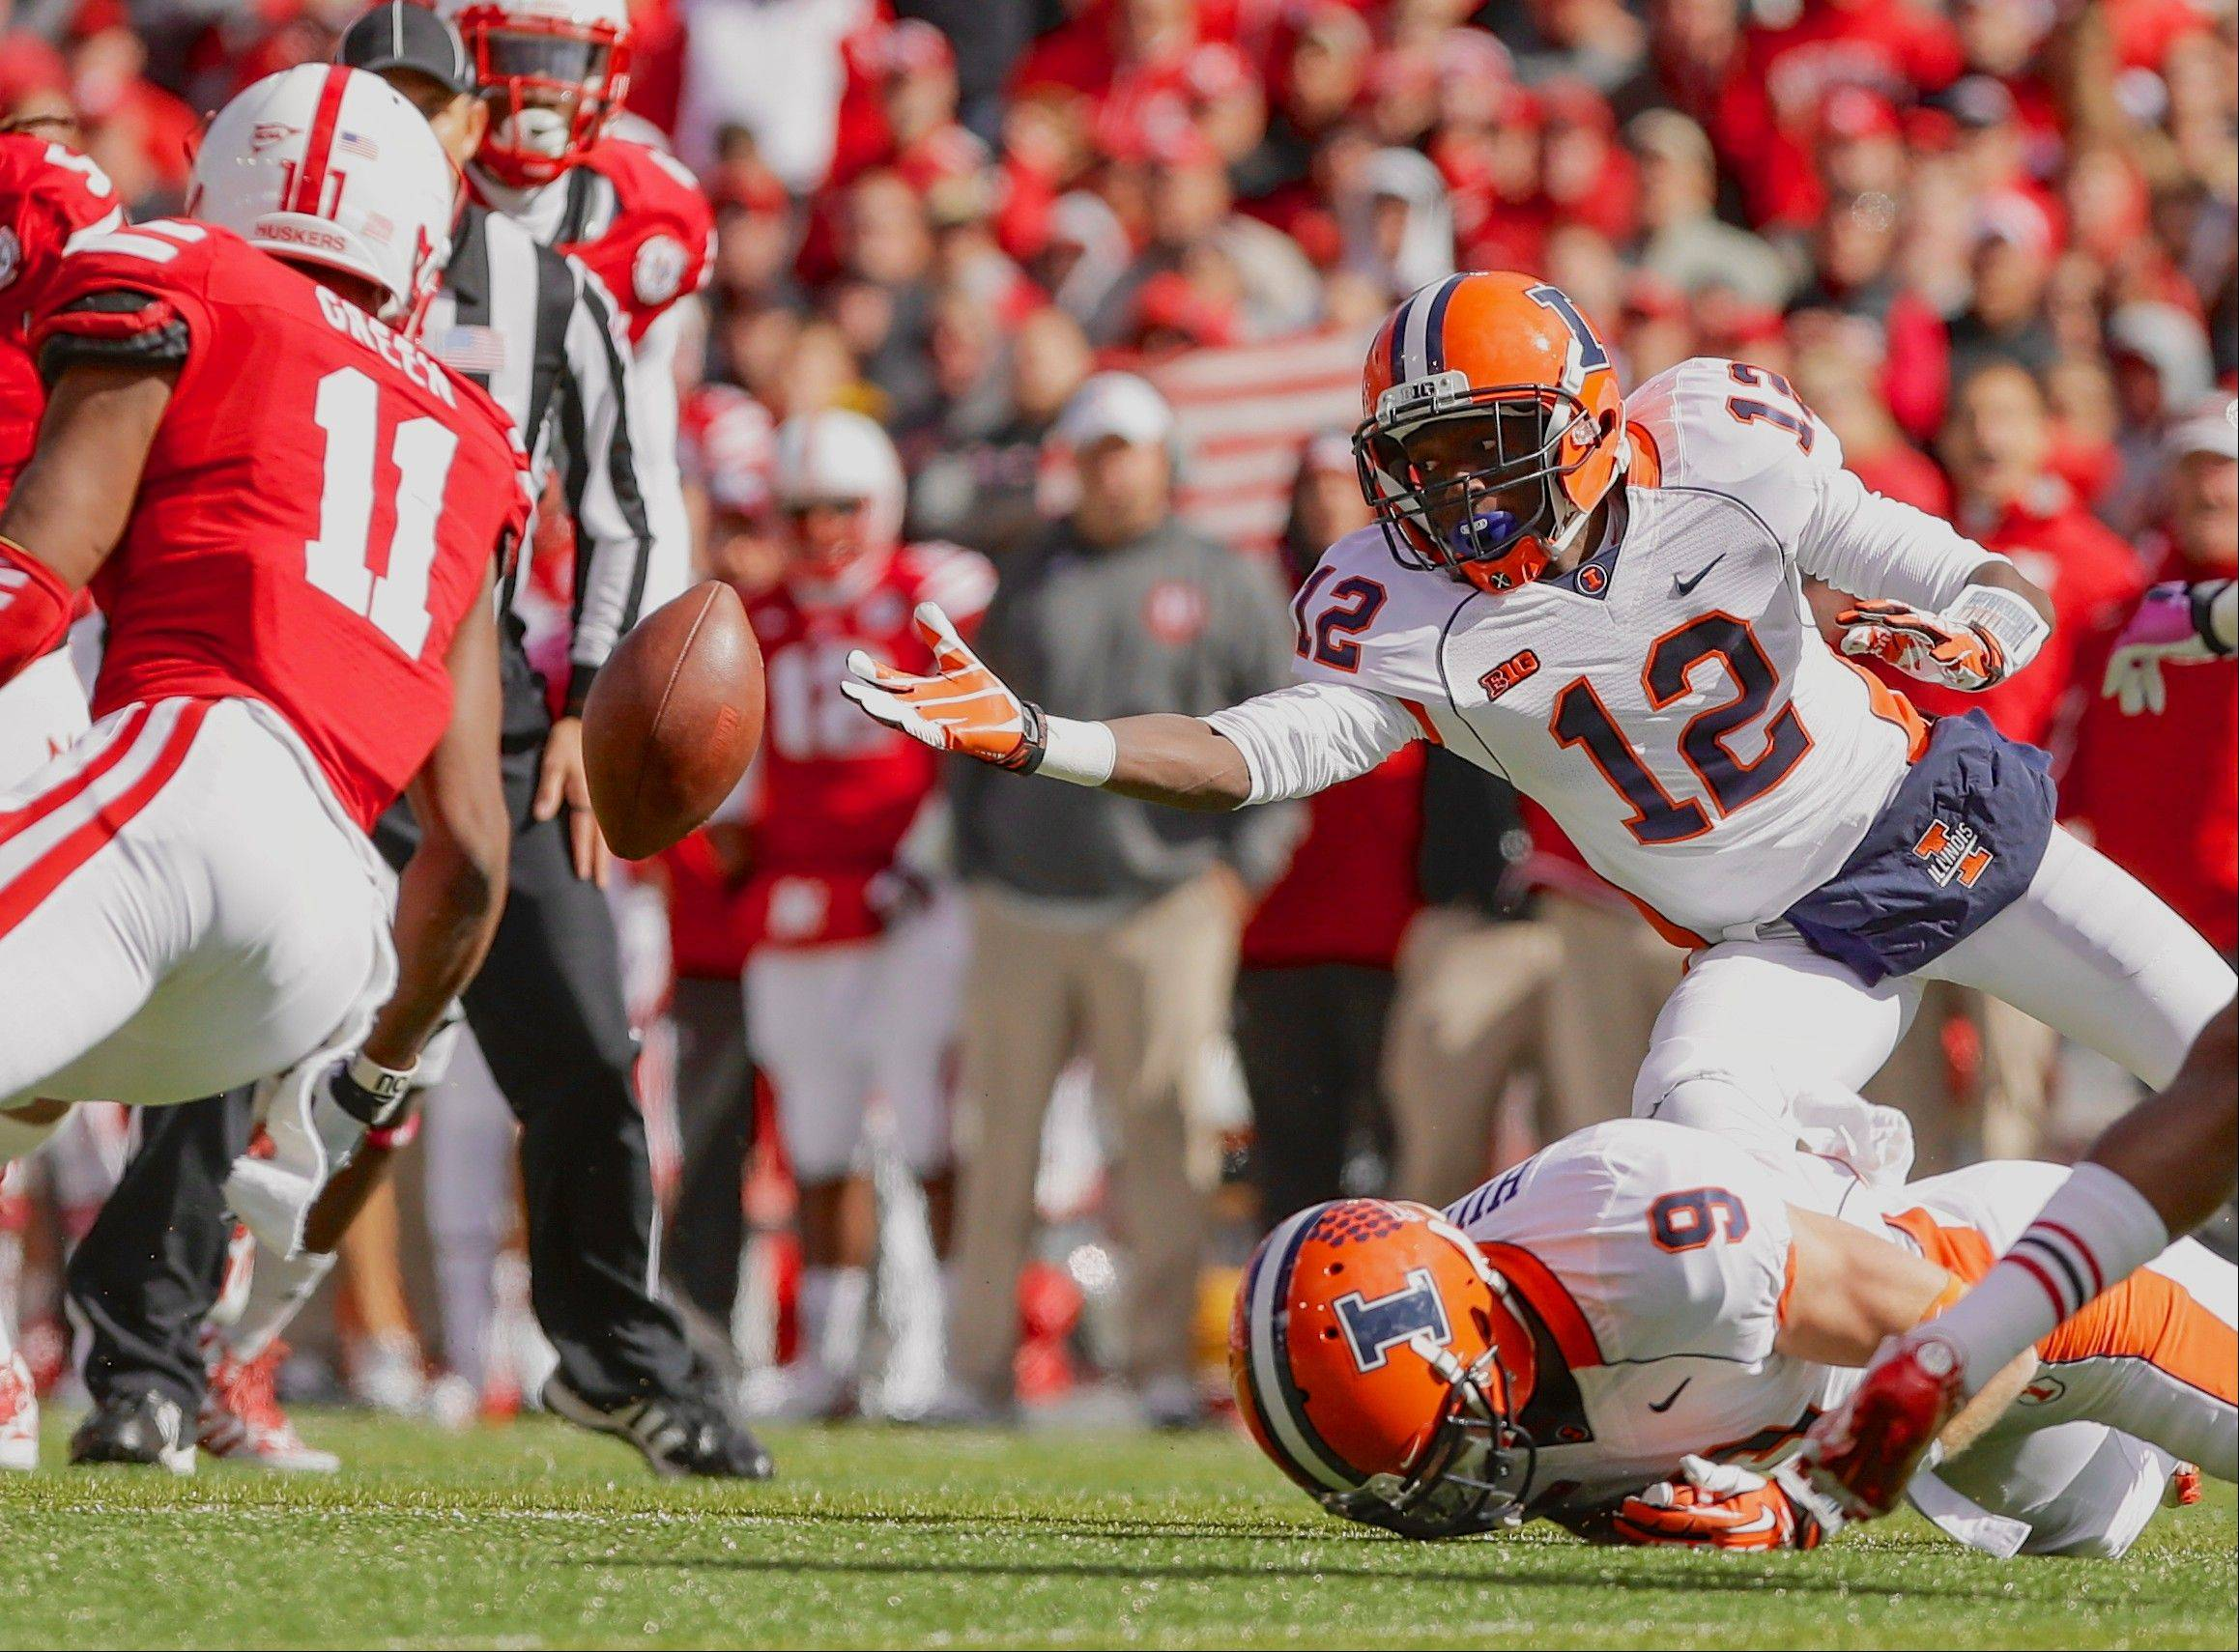 Illinois wide receiver Ryan Lankford (12) and Nebraska defensive back Andrew Green (11) reach out for a ball intended for Illinois wide receiver Steve Hull (9), which was knocked away by Nebraska cornerback Stanley Jean-Baptiste, not shown, in the first half.